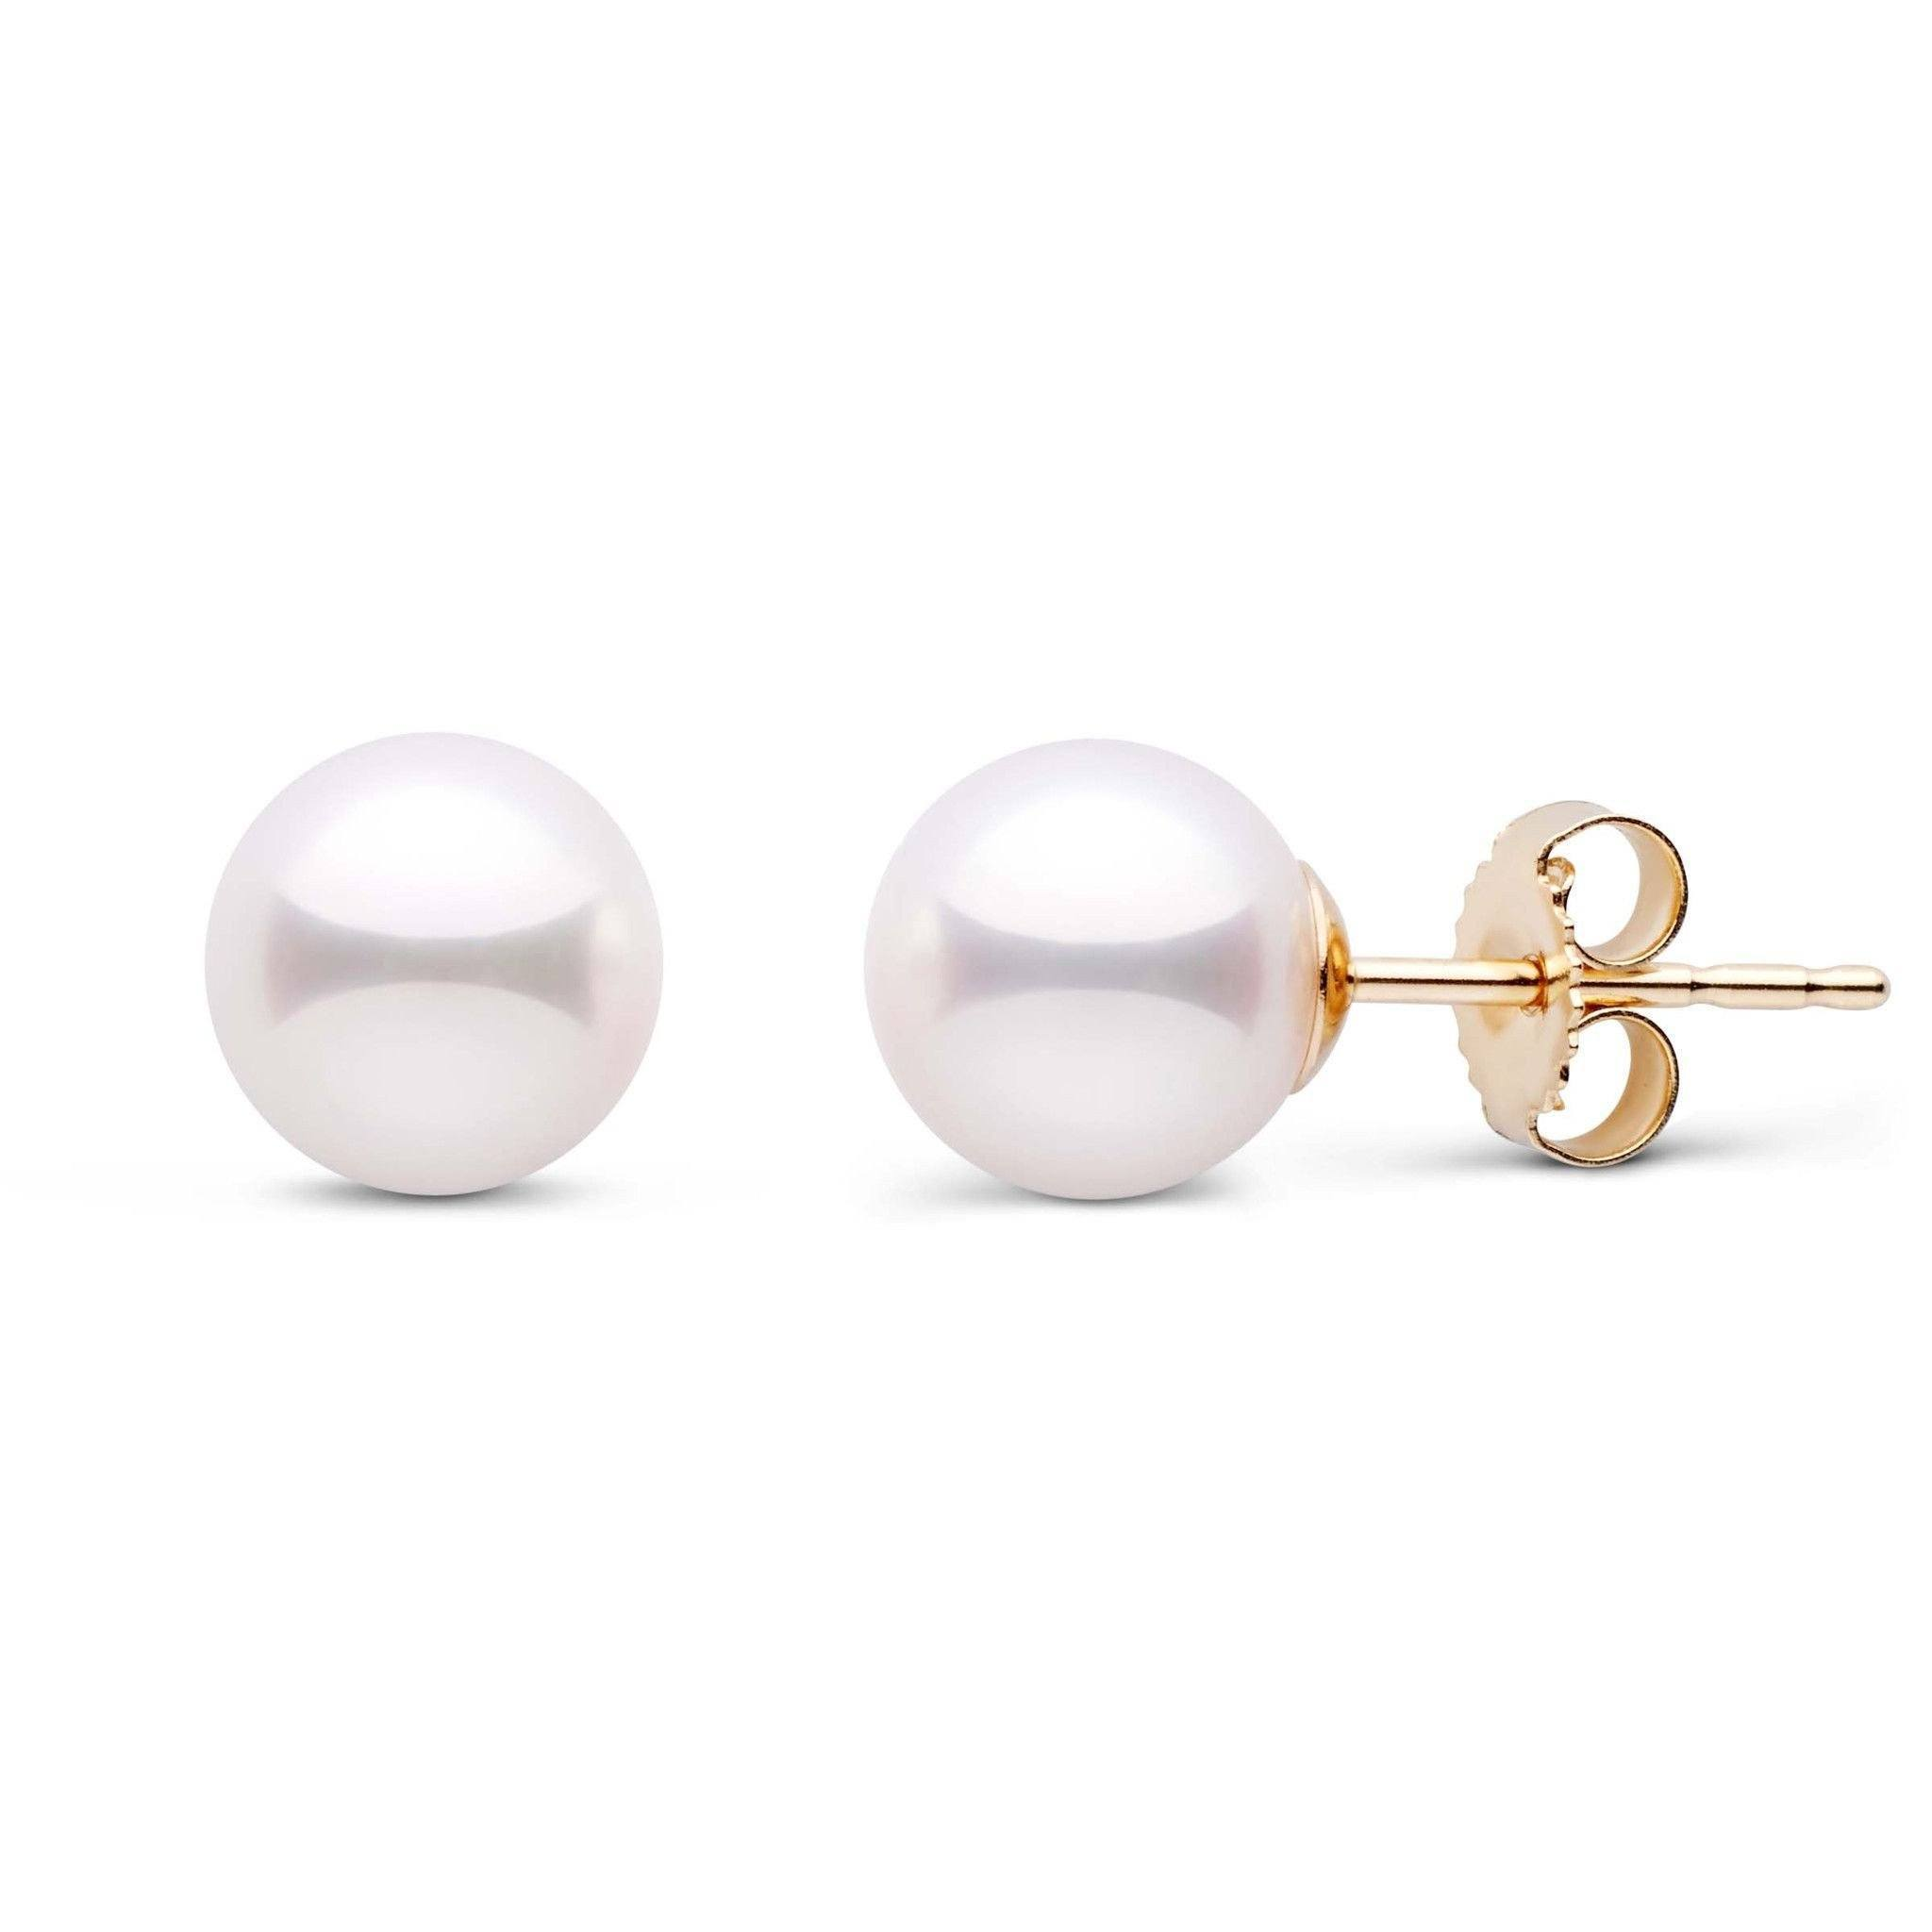 7.0-7.5 mm White Akoya AAA Pearl Stud Earrings